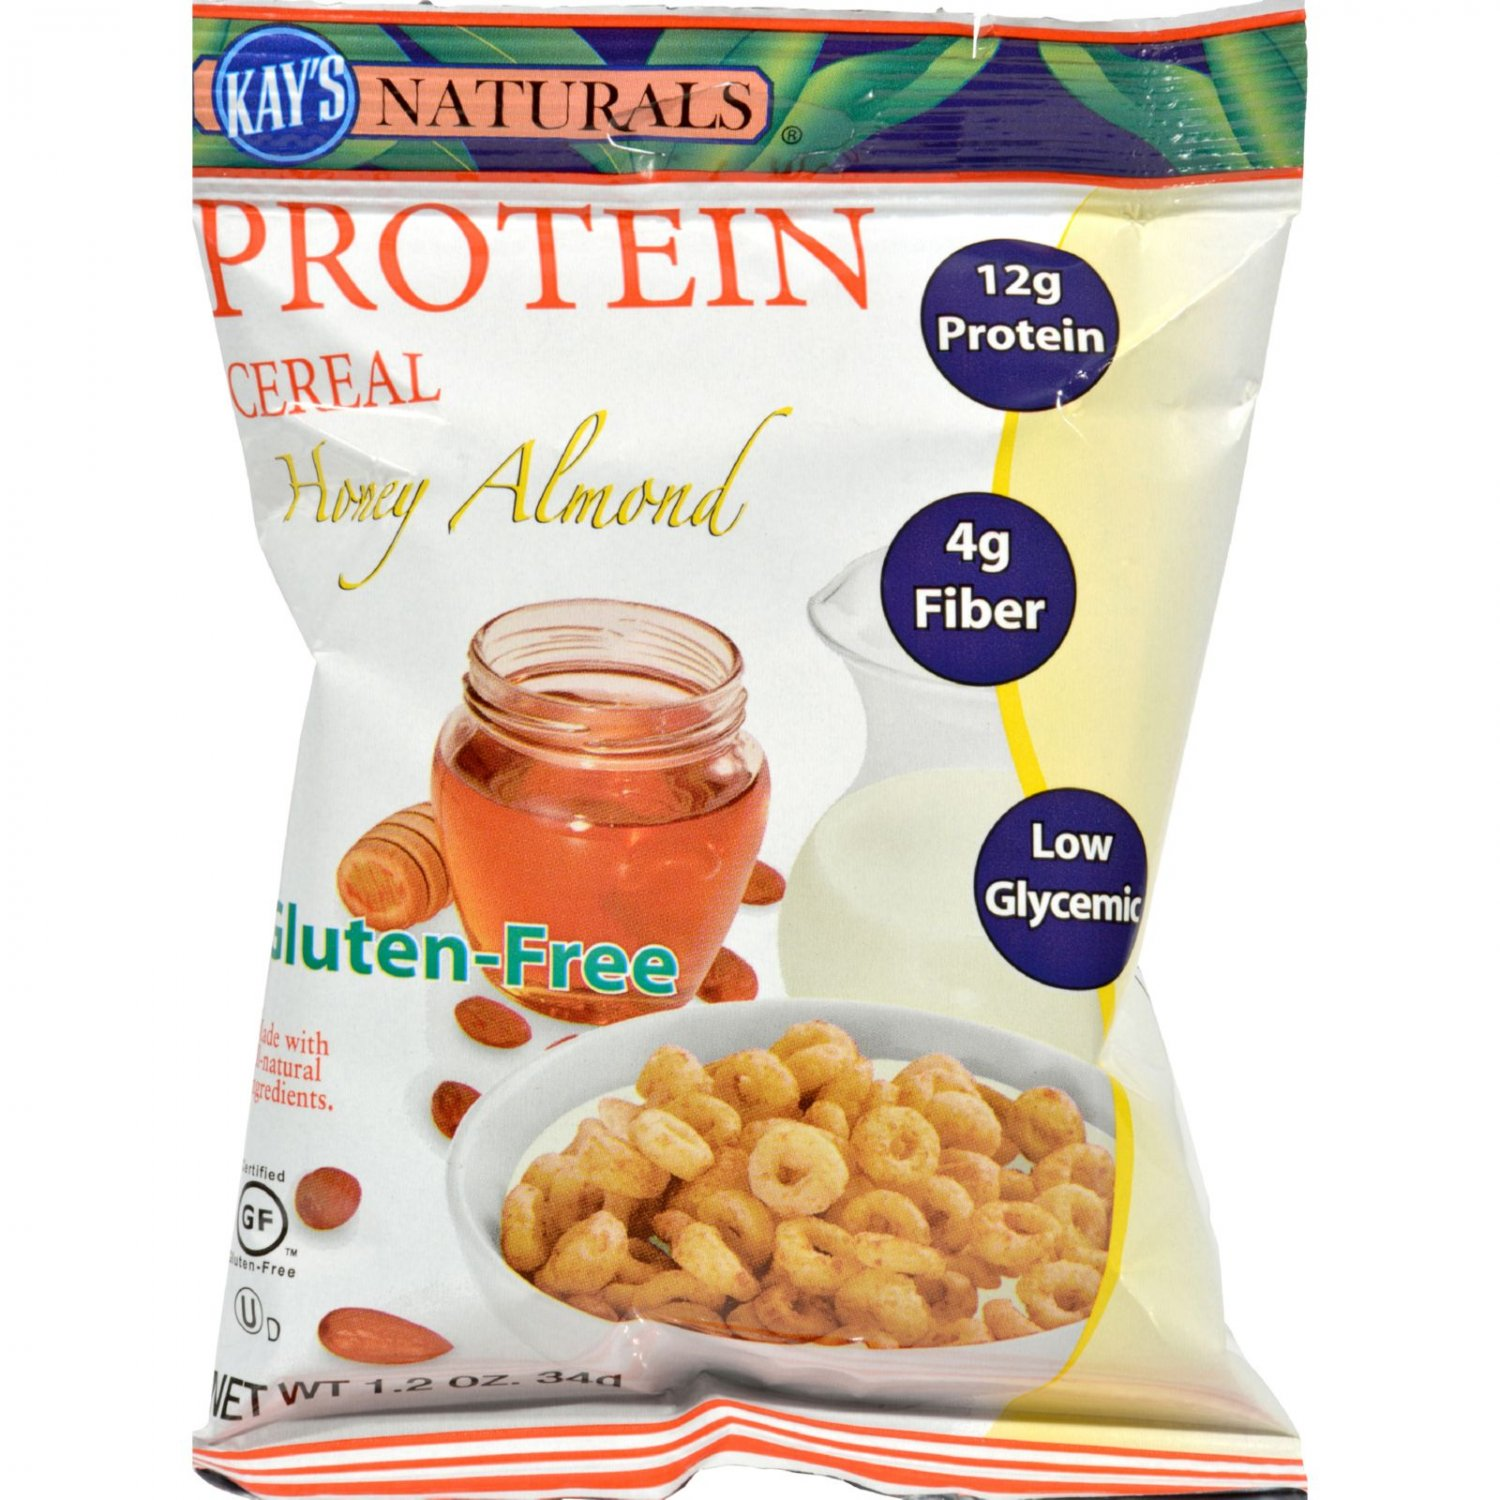 Kay's Naturals Protein Cereal Honey Almond - 1.2 oz - Case of 6